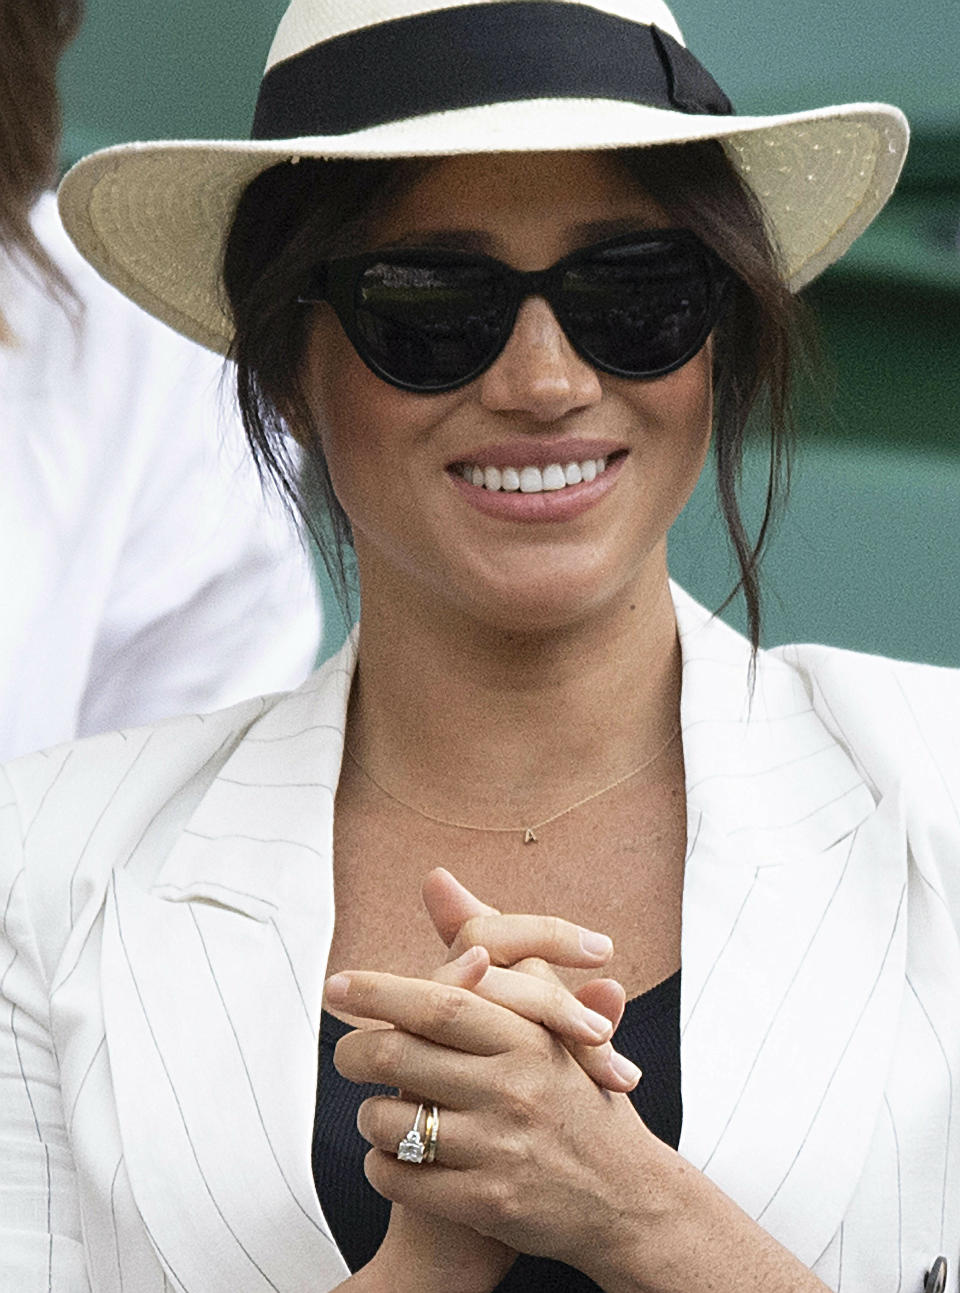 Photo by: KGC-173/STAR MAX/IPx 2019 7/4/19 Meghan, The Duchess of Sussex at the 2019 Wimbledon Tennis Championships where she made a surprise appearance. (Wimbledon, UK)